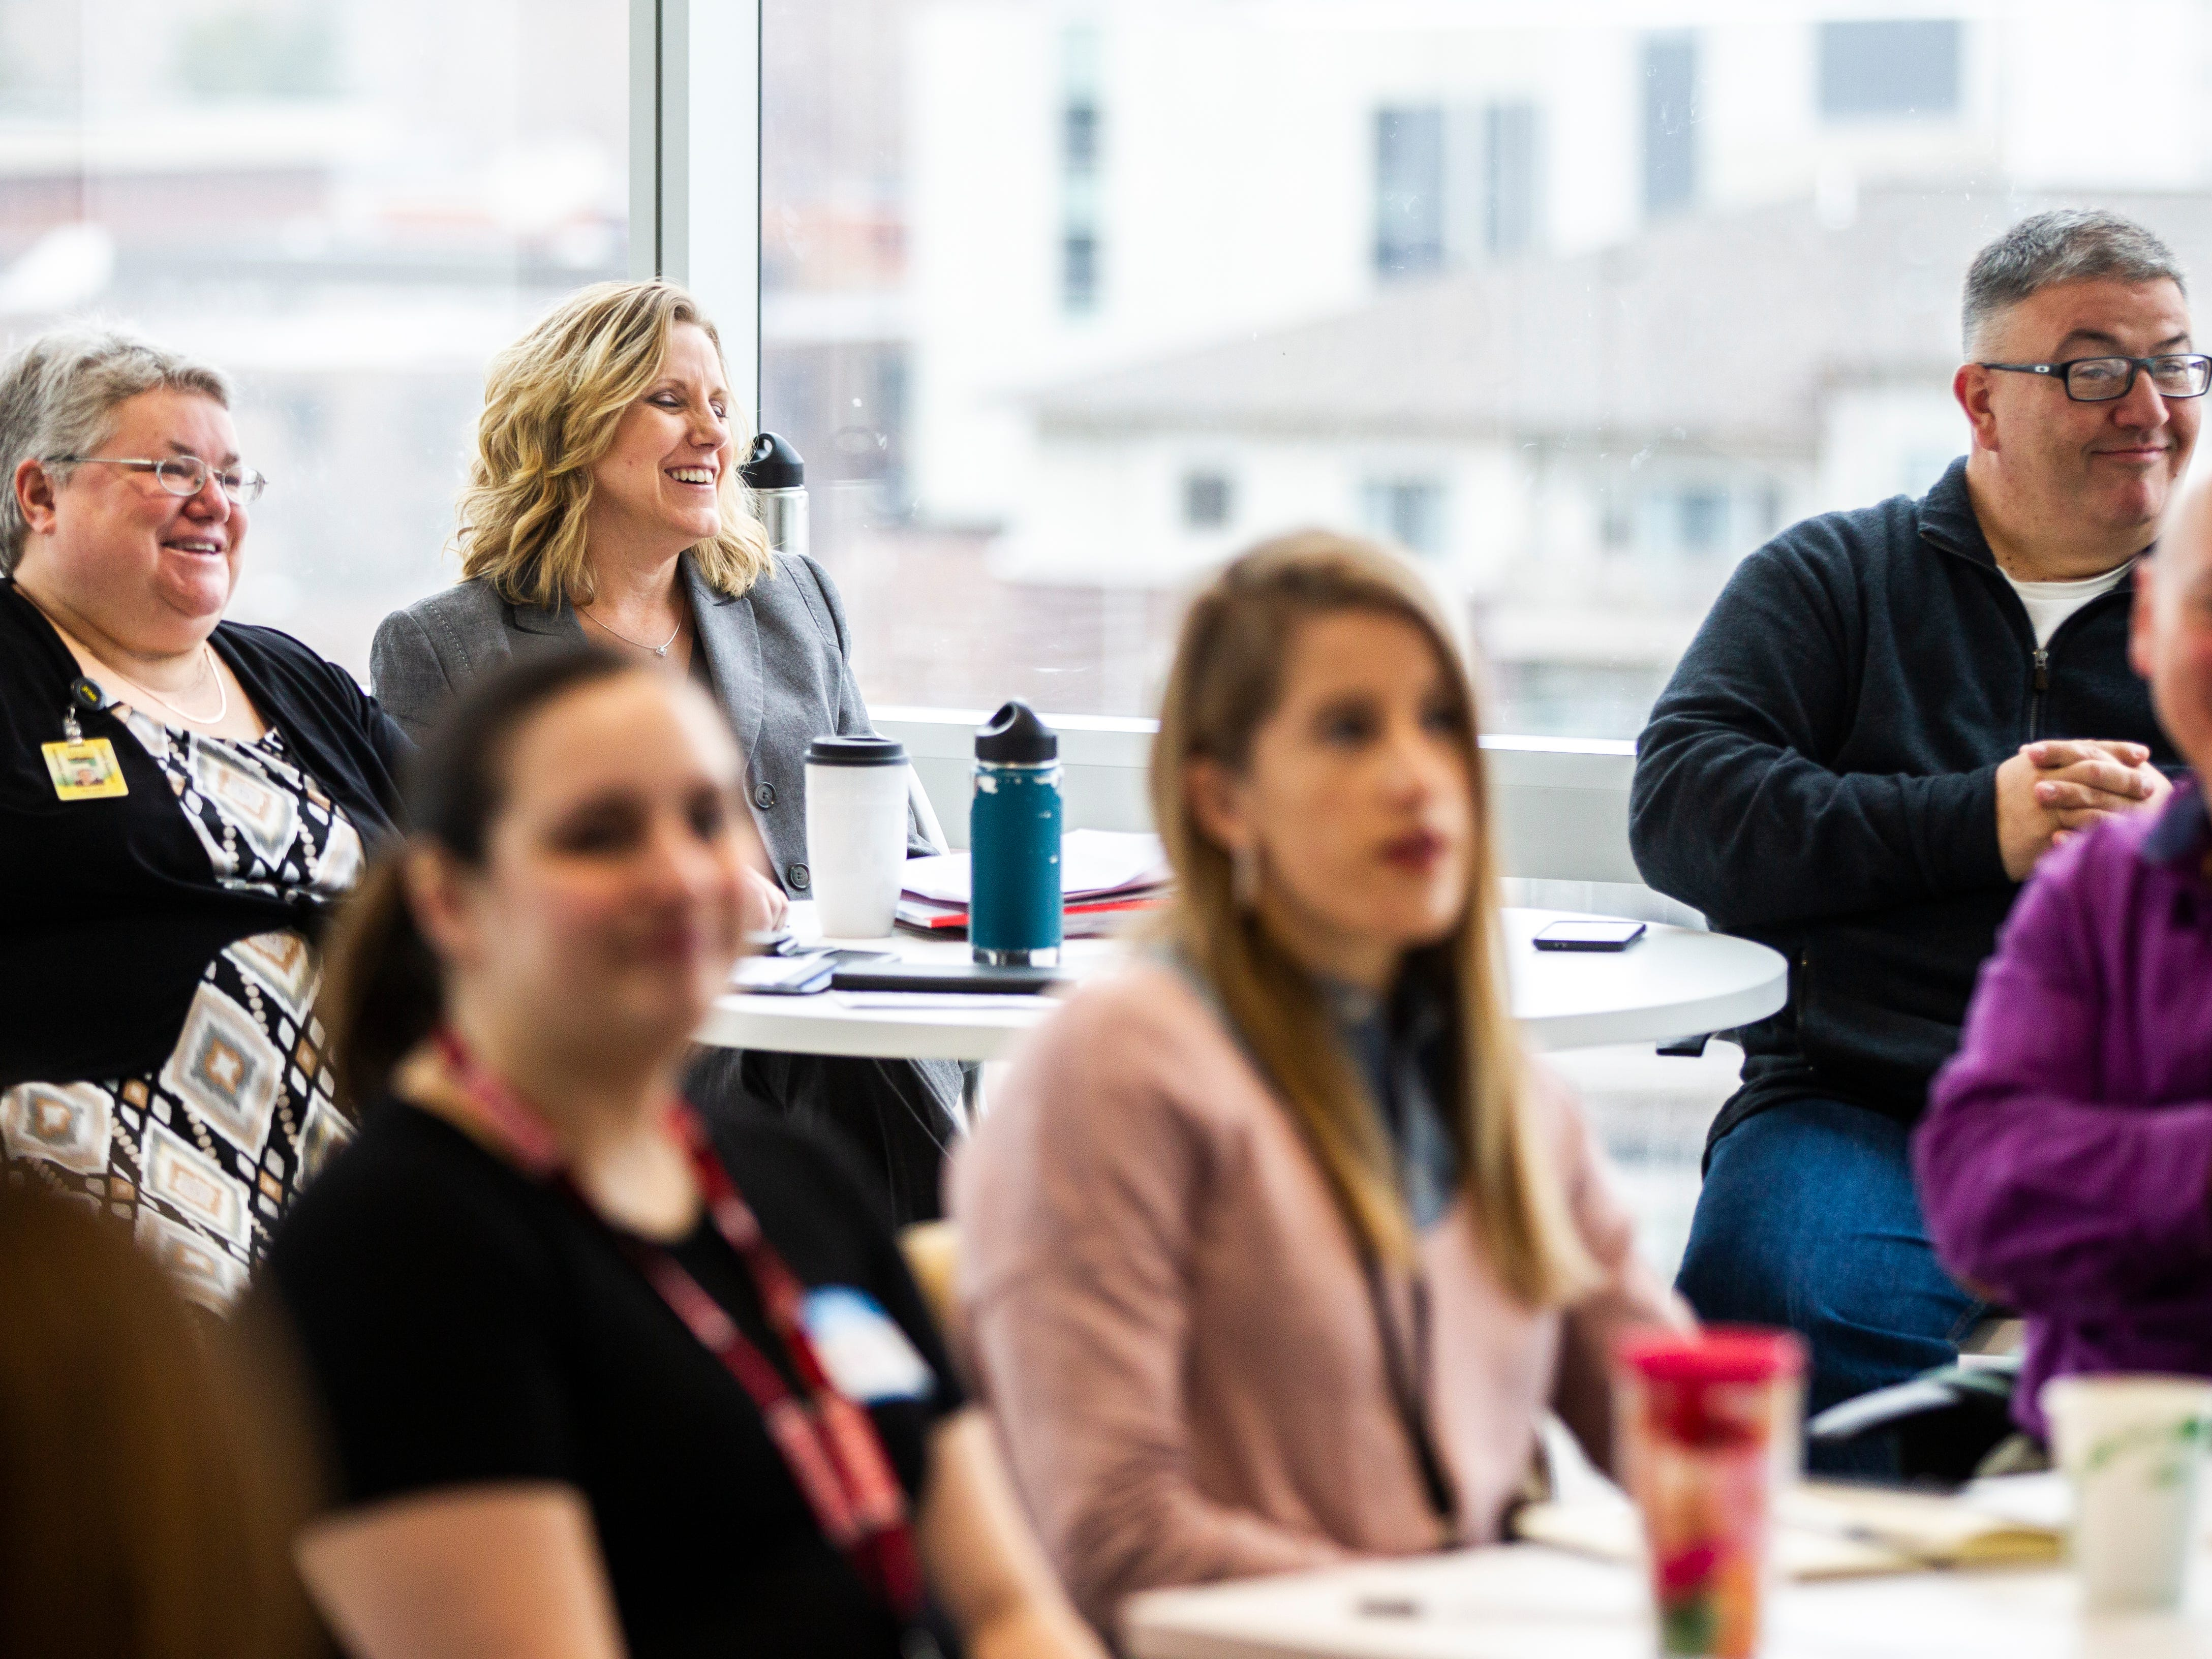 Janelle Rettig, (far left) Lynette Jacoby and Rod Sullivan sit at a table during a working group addressing the state of poverty in Johnson County on Friday, Nov. 16, 2018, on the fifth floor Penthouse Room at MidWestOne Bank in Iowa City.